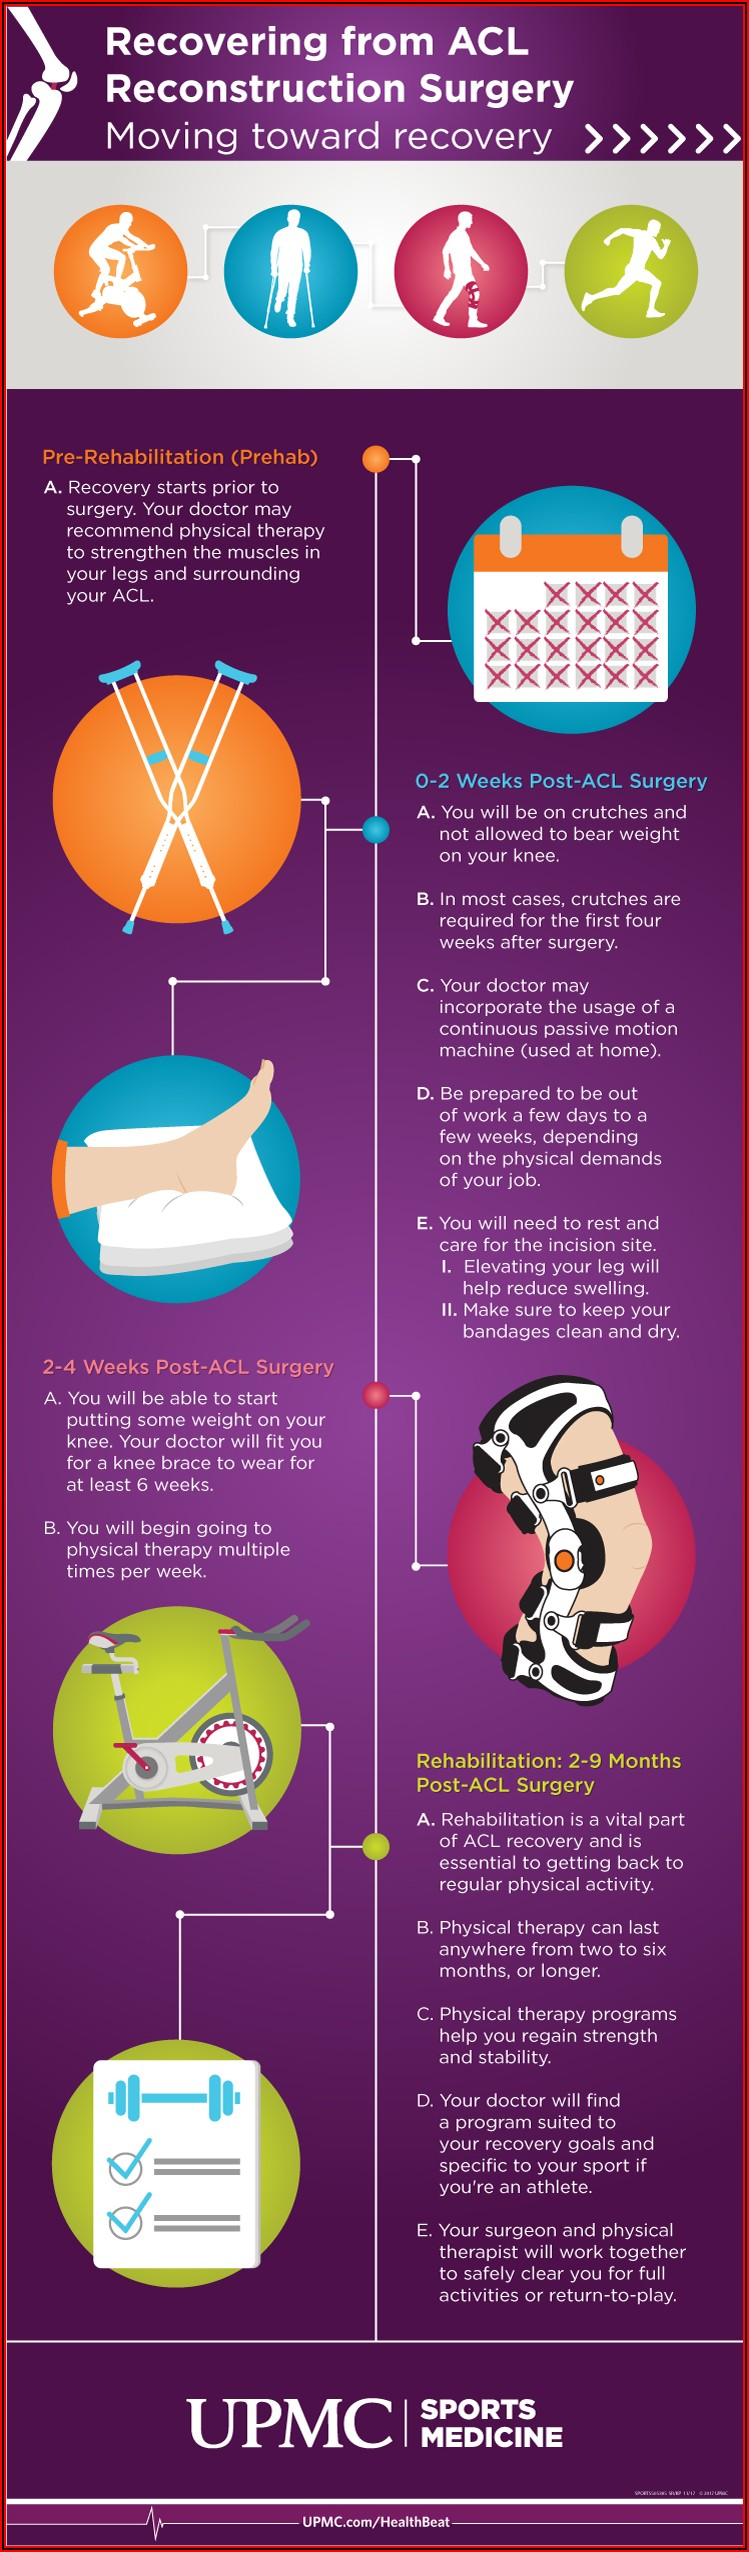 Acl Reconstruction Recovery Timeline Blog